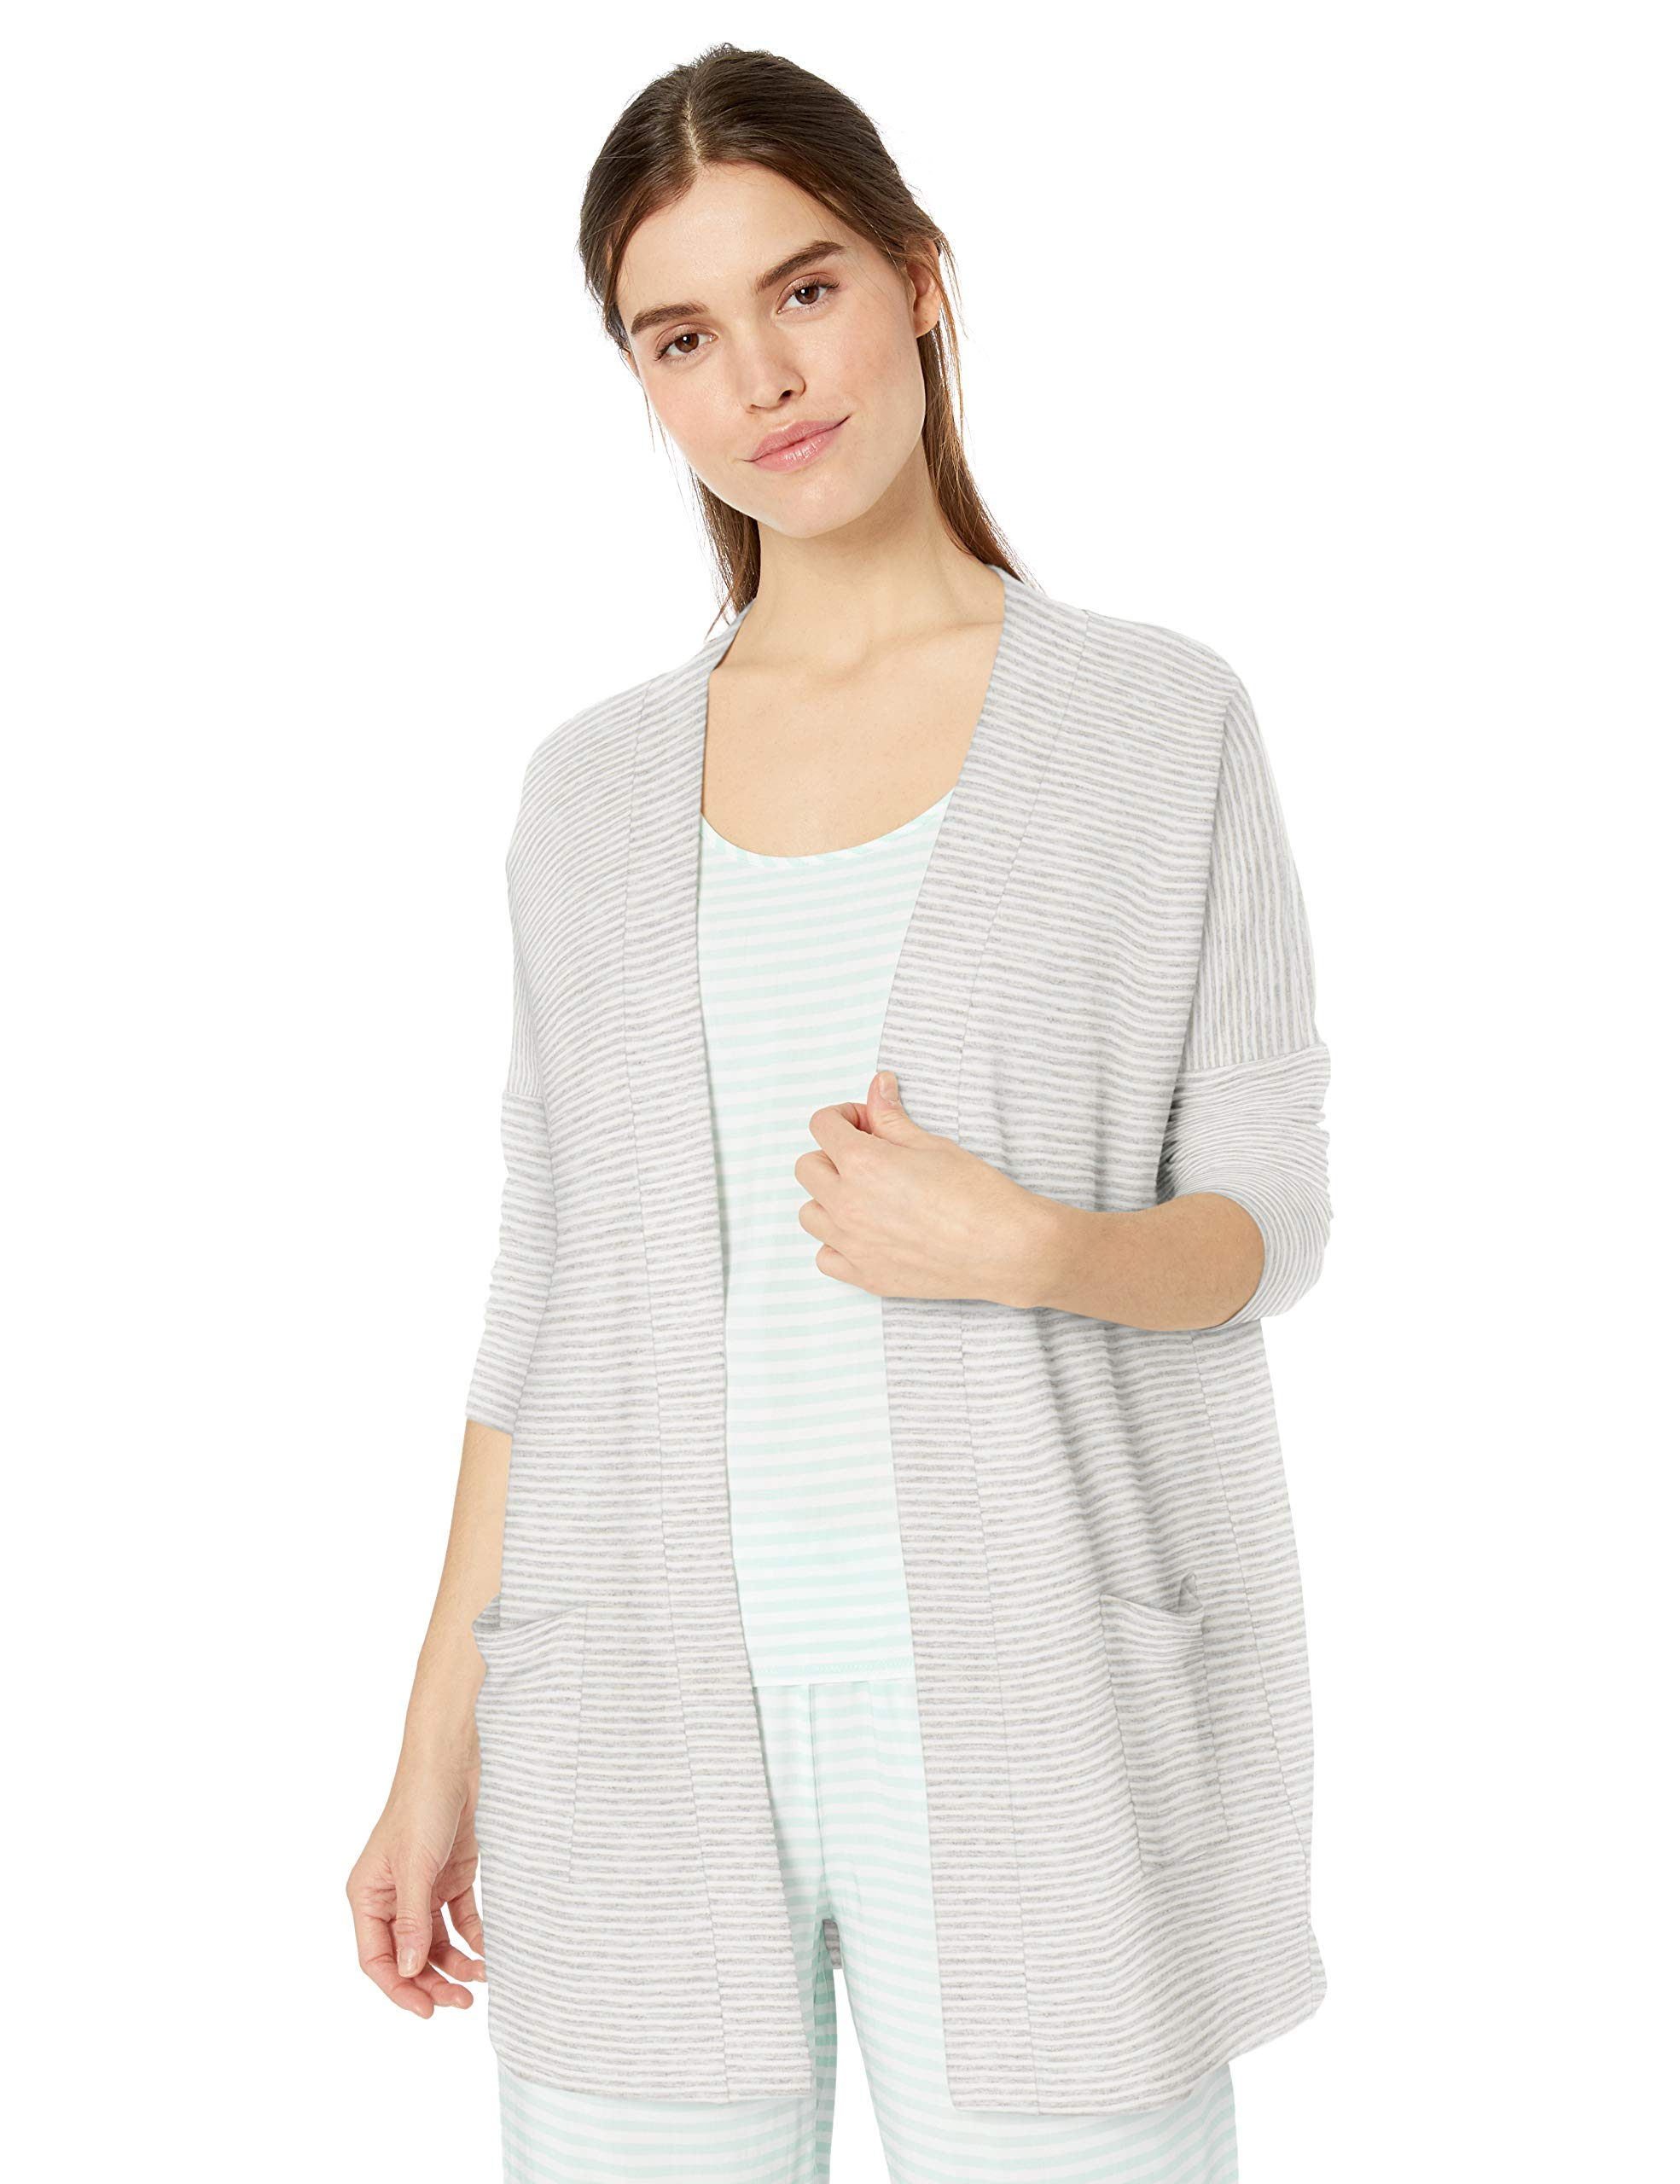 Amazon Essentials Women's Lightweight Lounge